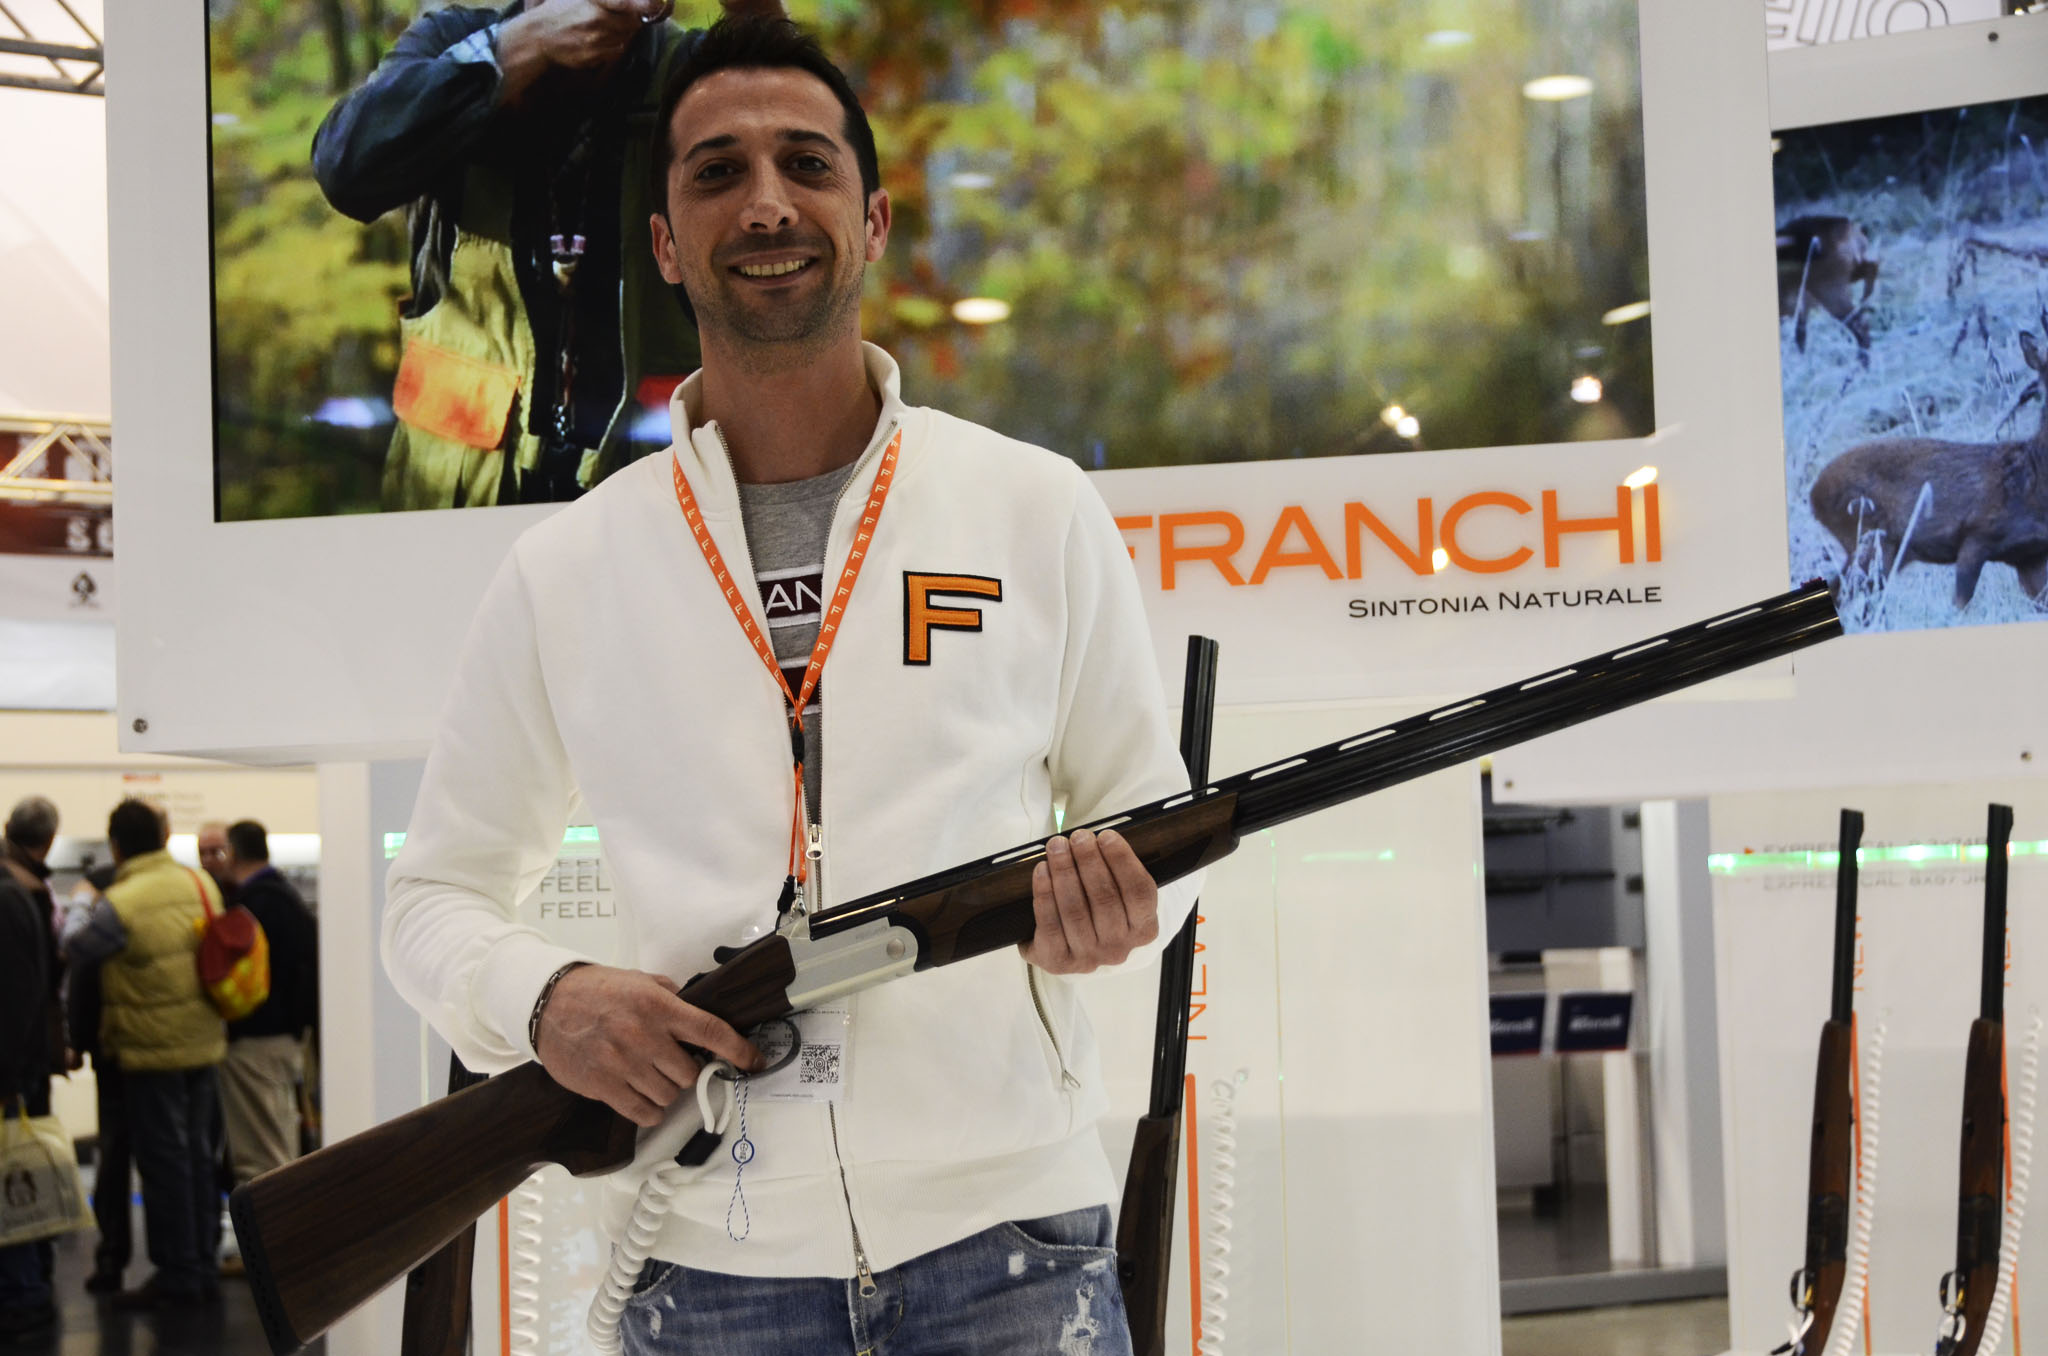 Matteo Masserdotti, of the sales office of Franchi, shows the new shotgun Franchi Feeling cal. .410